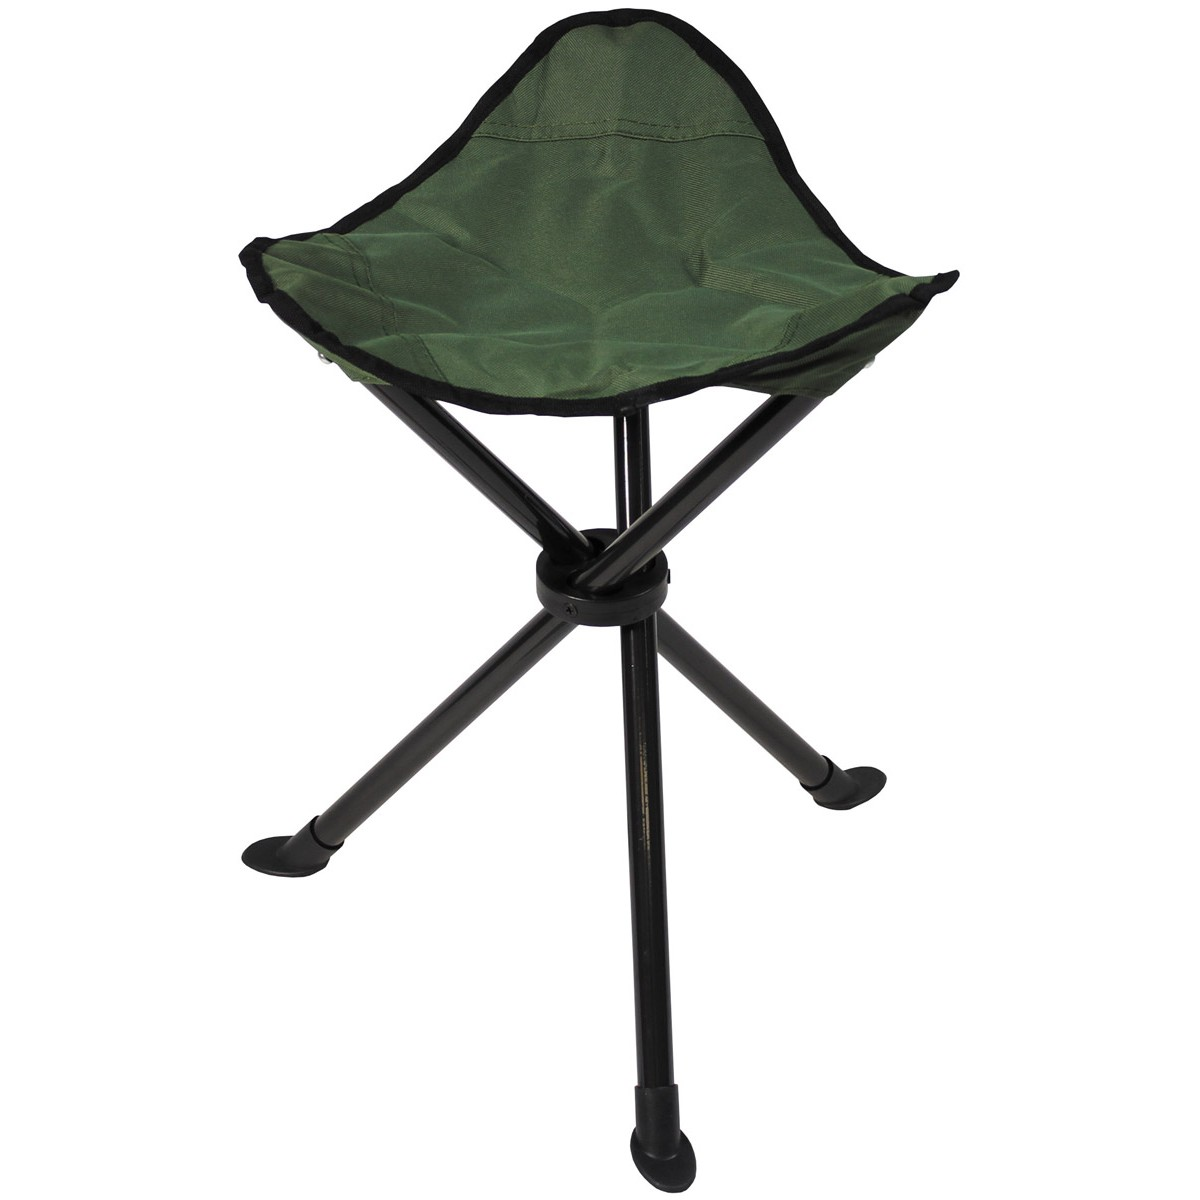 Folding Stool, tripod, OD green, carrying strap